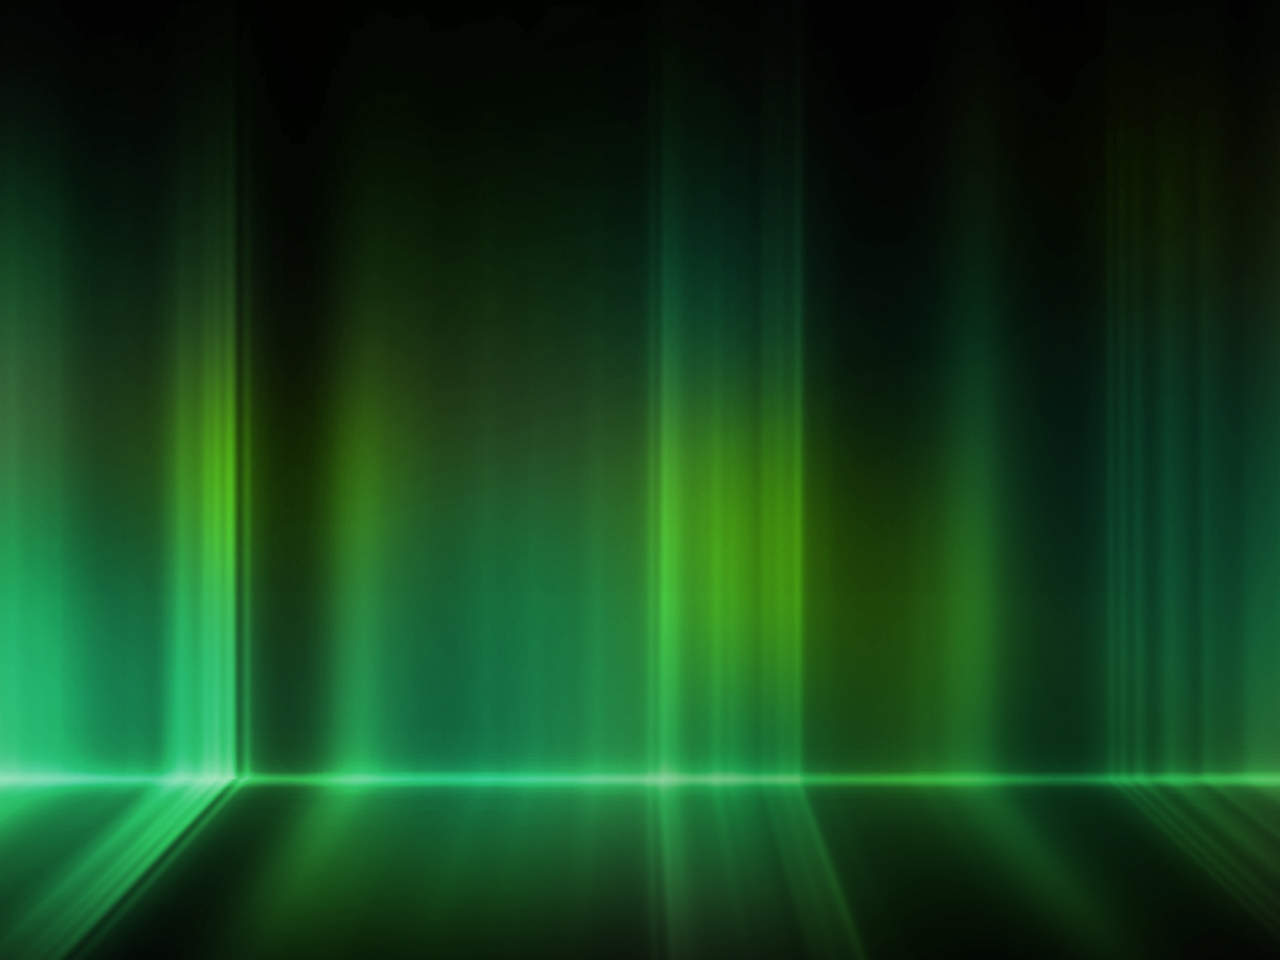 Free Download Dark Abstract Backgrounds Perfect Dark Green